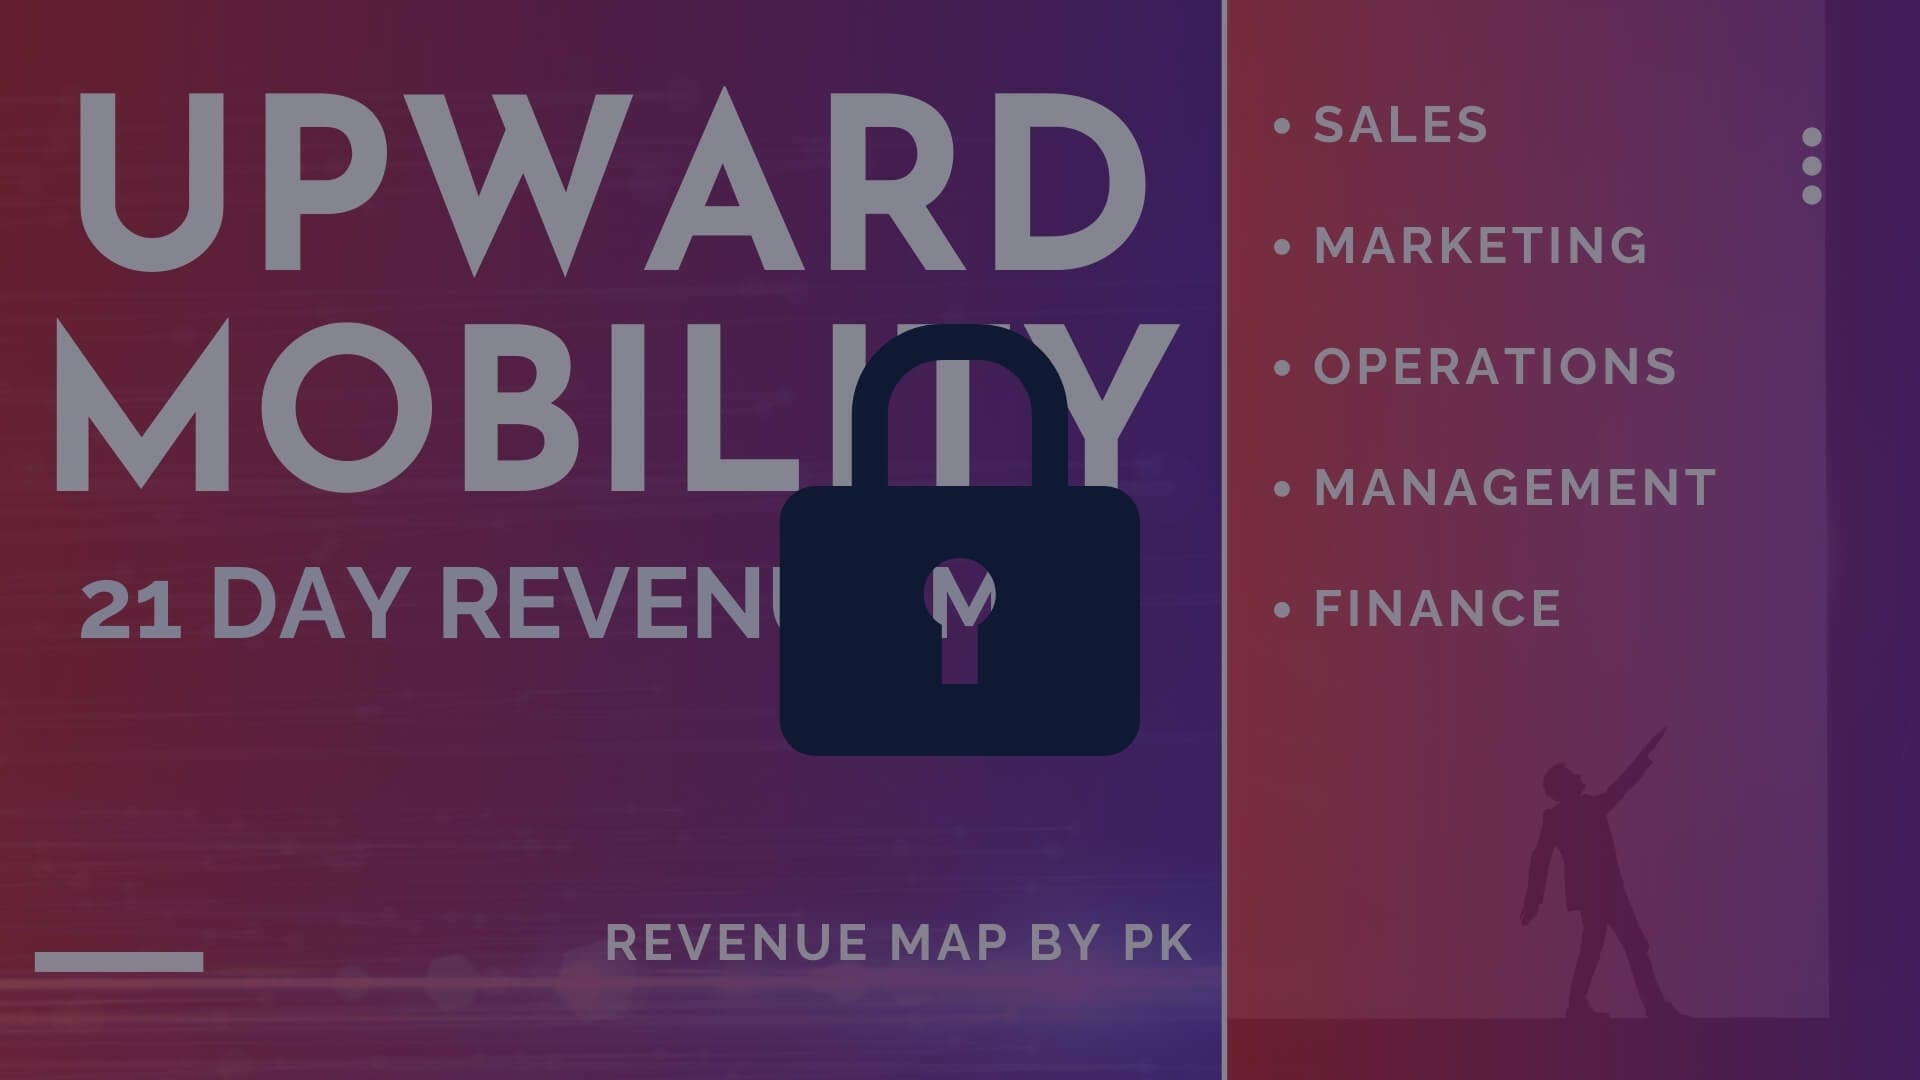 locked Upward Mobility 21 day revenue map by pk teaching sales marketing operations management and finance